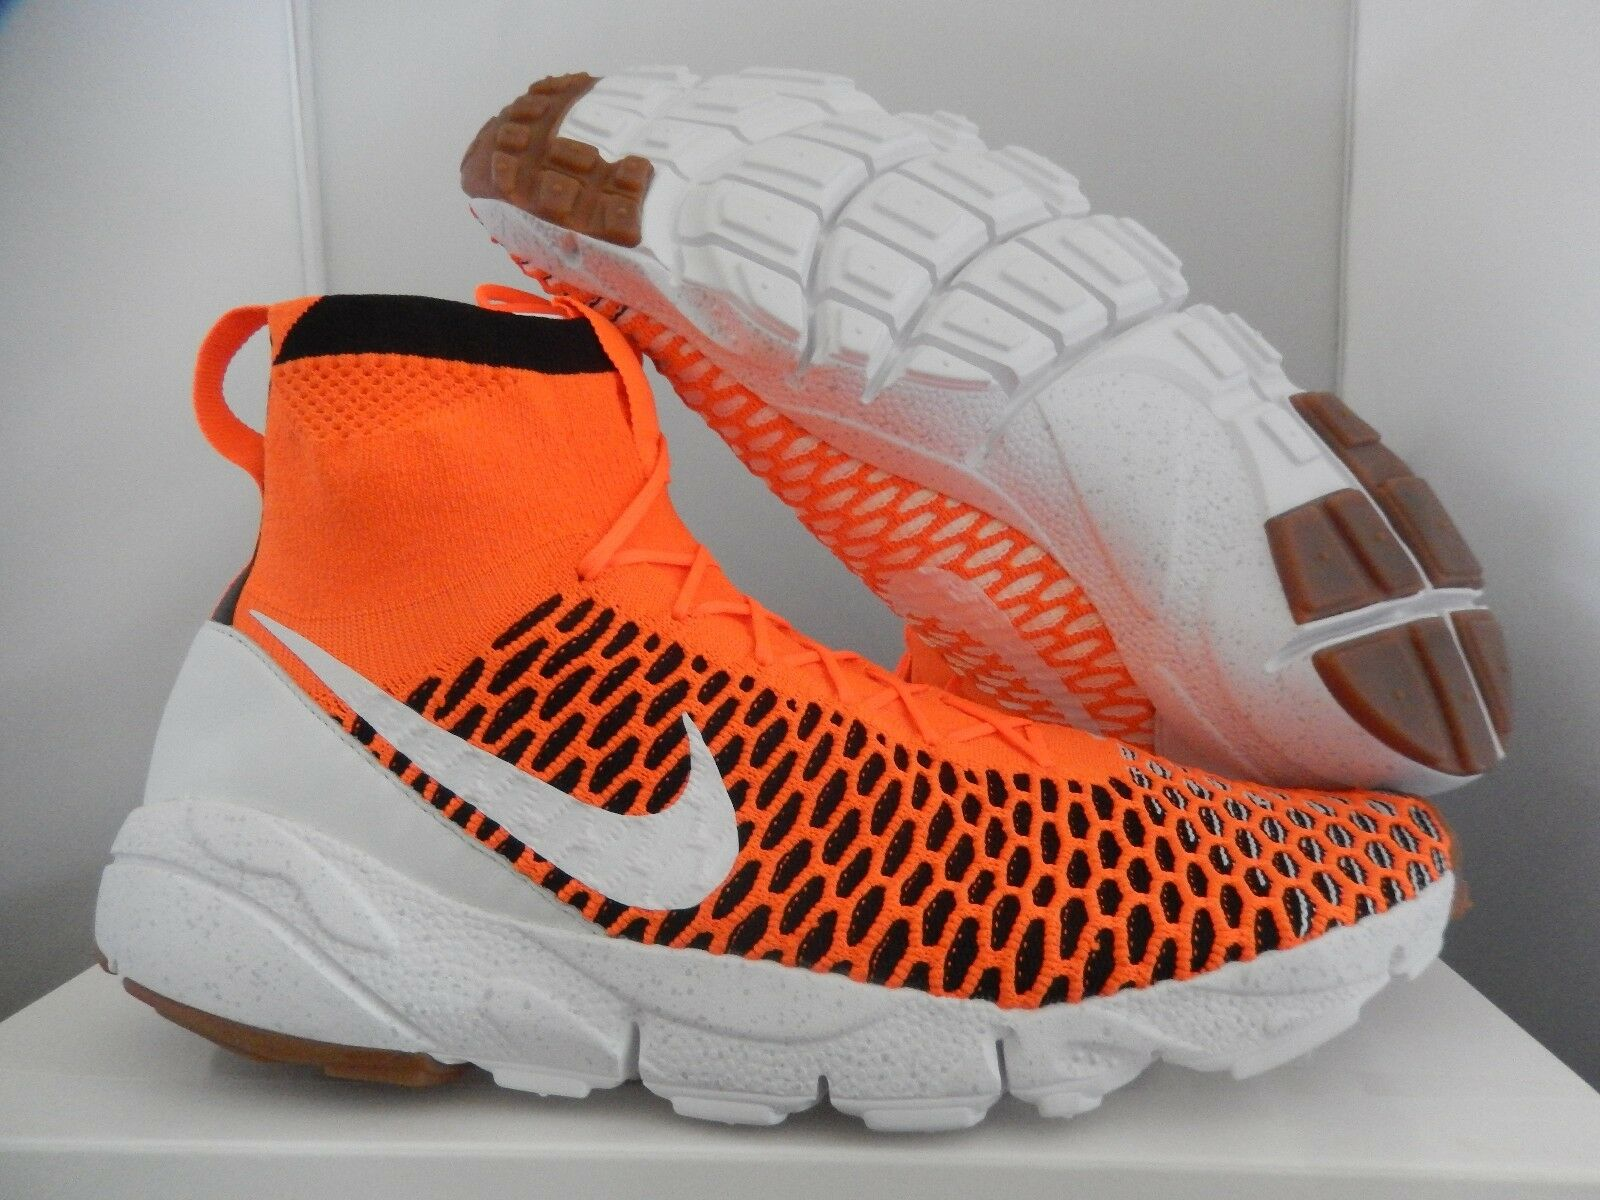 Nike air footscape magista sp totale orange-white-nero sz - 652960-800]